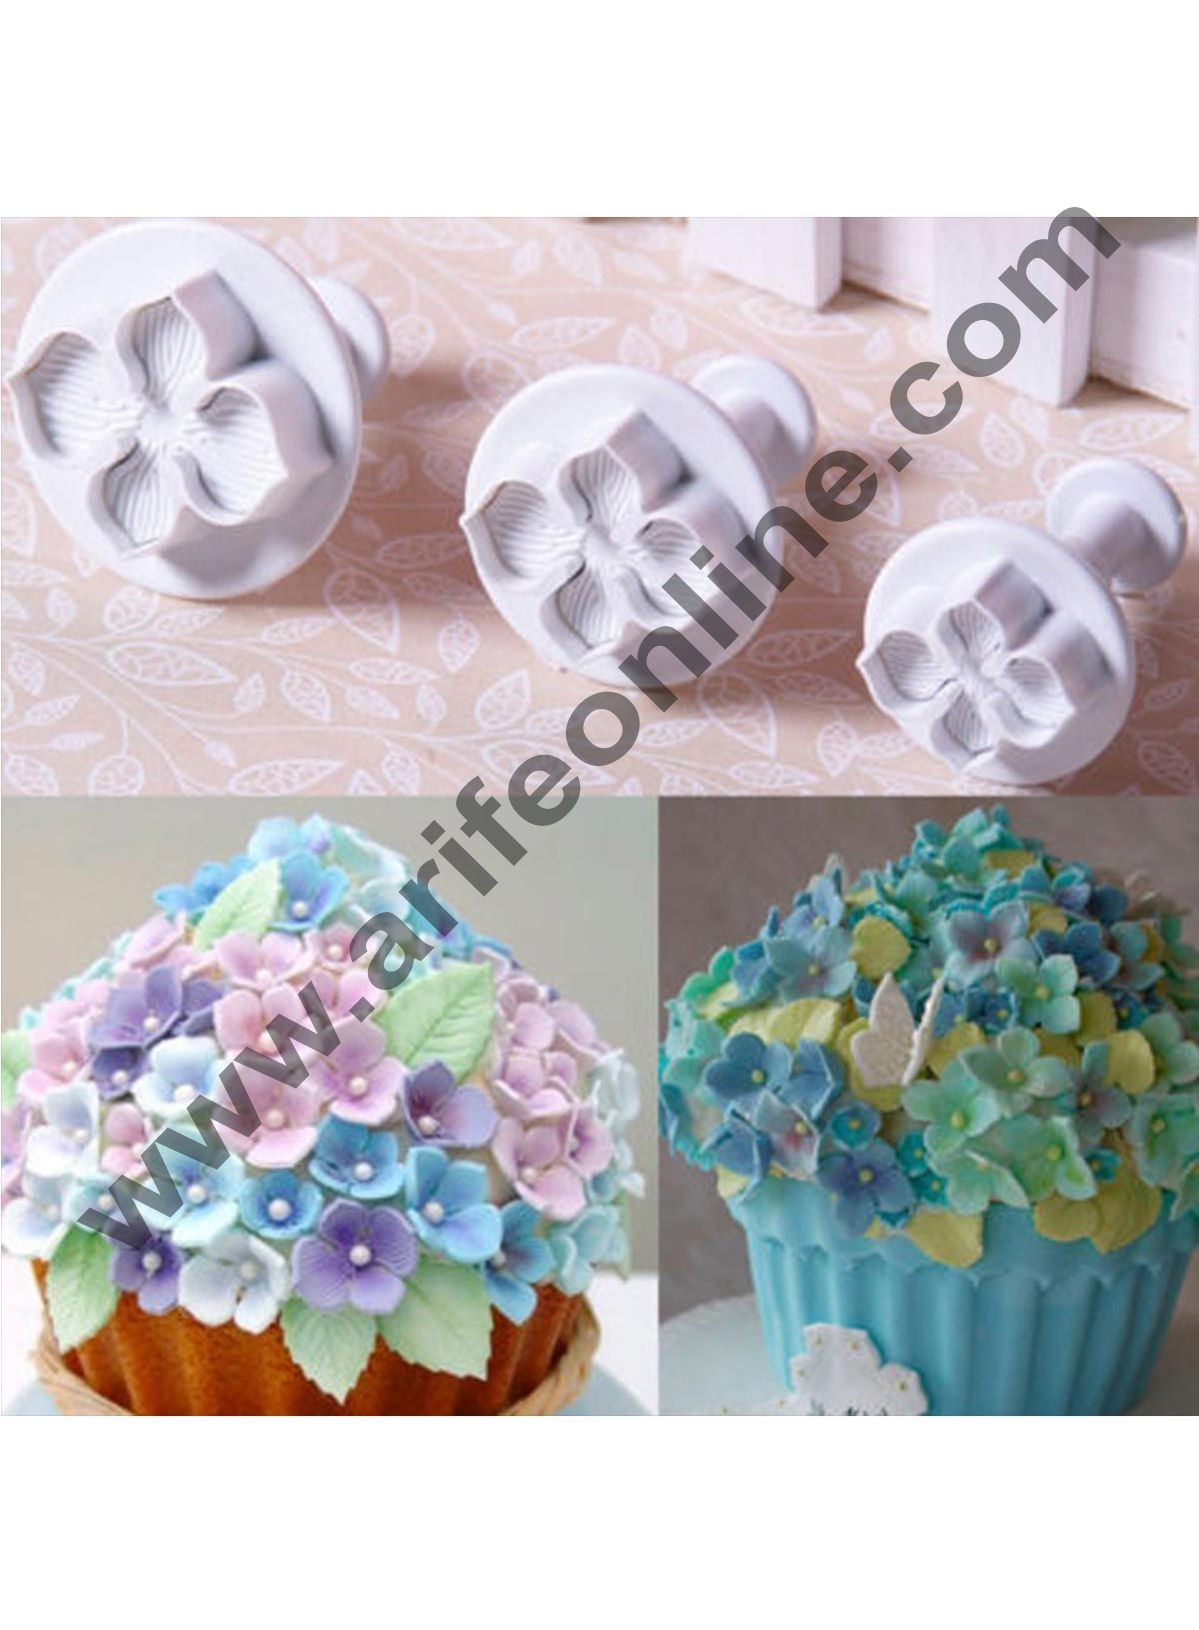 Cake Decor 3pcs Hydrangea Veined Laurustinus Flower Cake Sugar Craft Fondant Plunger Cutters